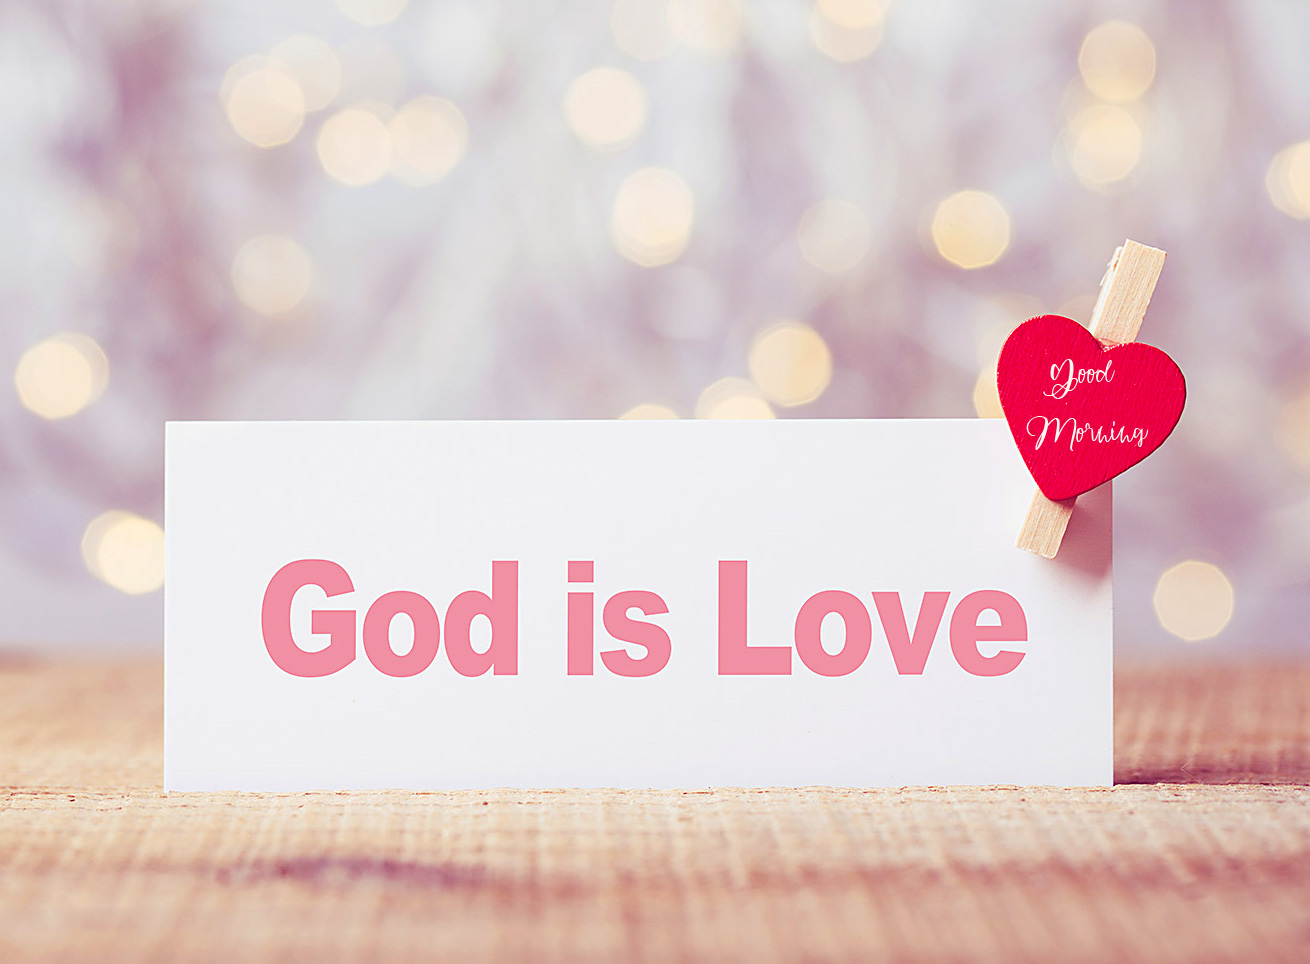 Good Morning with God is Love